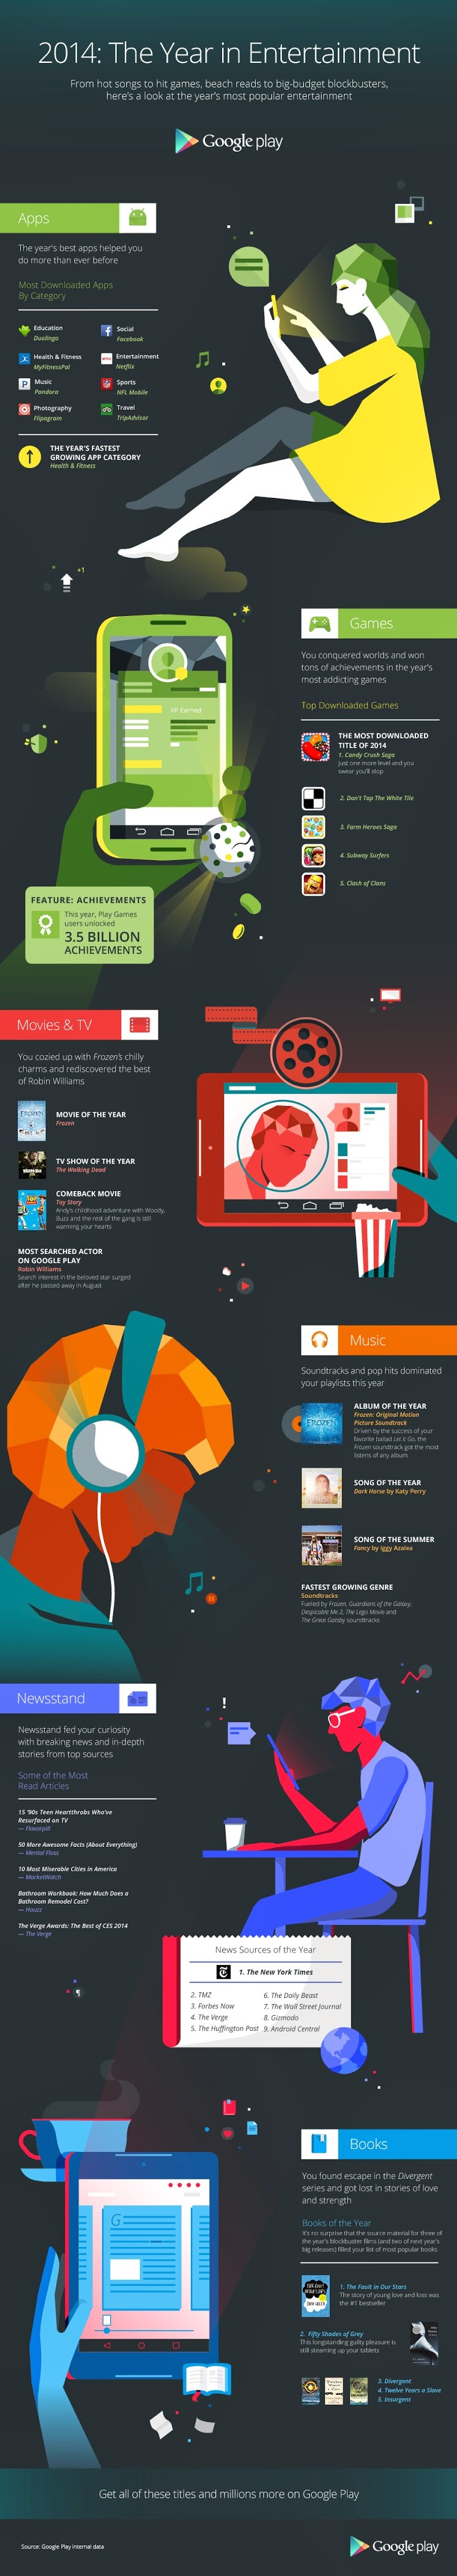 Google-Play-2014-infografia